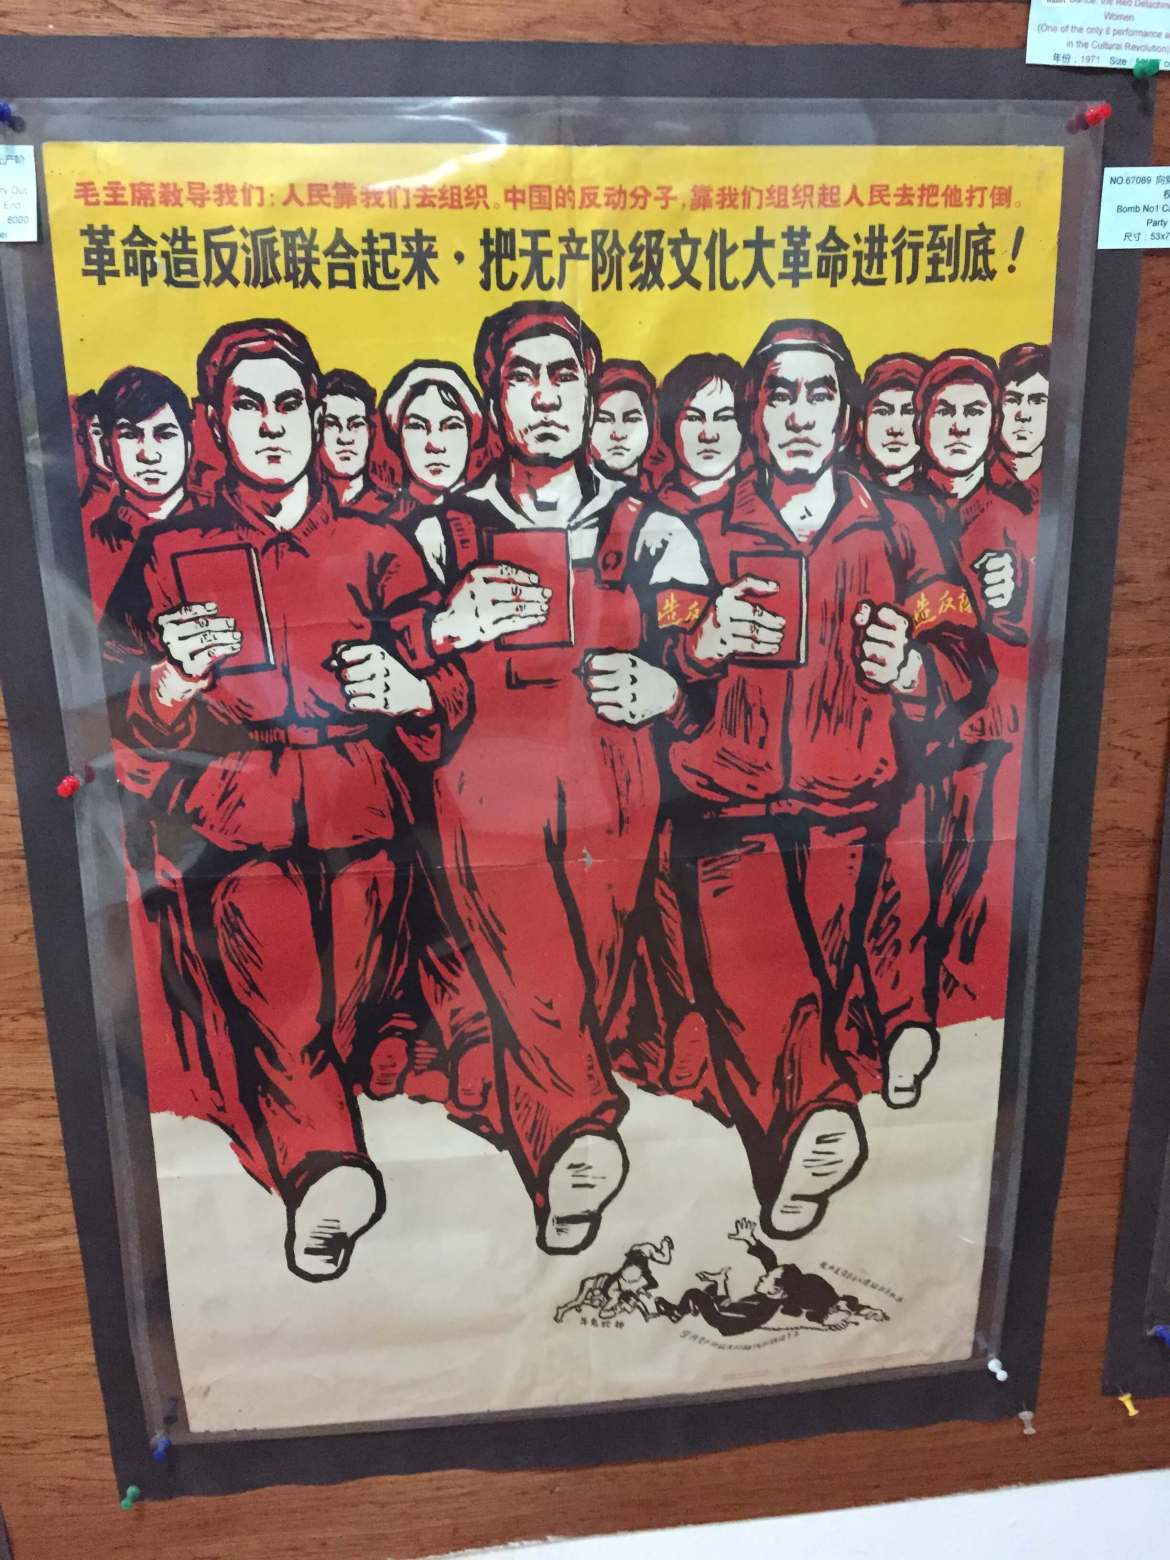 A poster of men marching at Propaganda Poster Art Centre